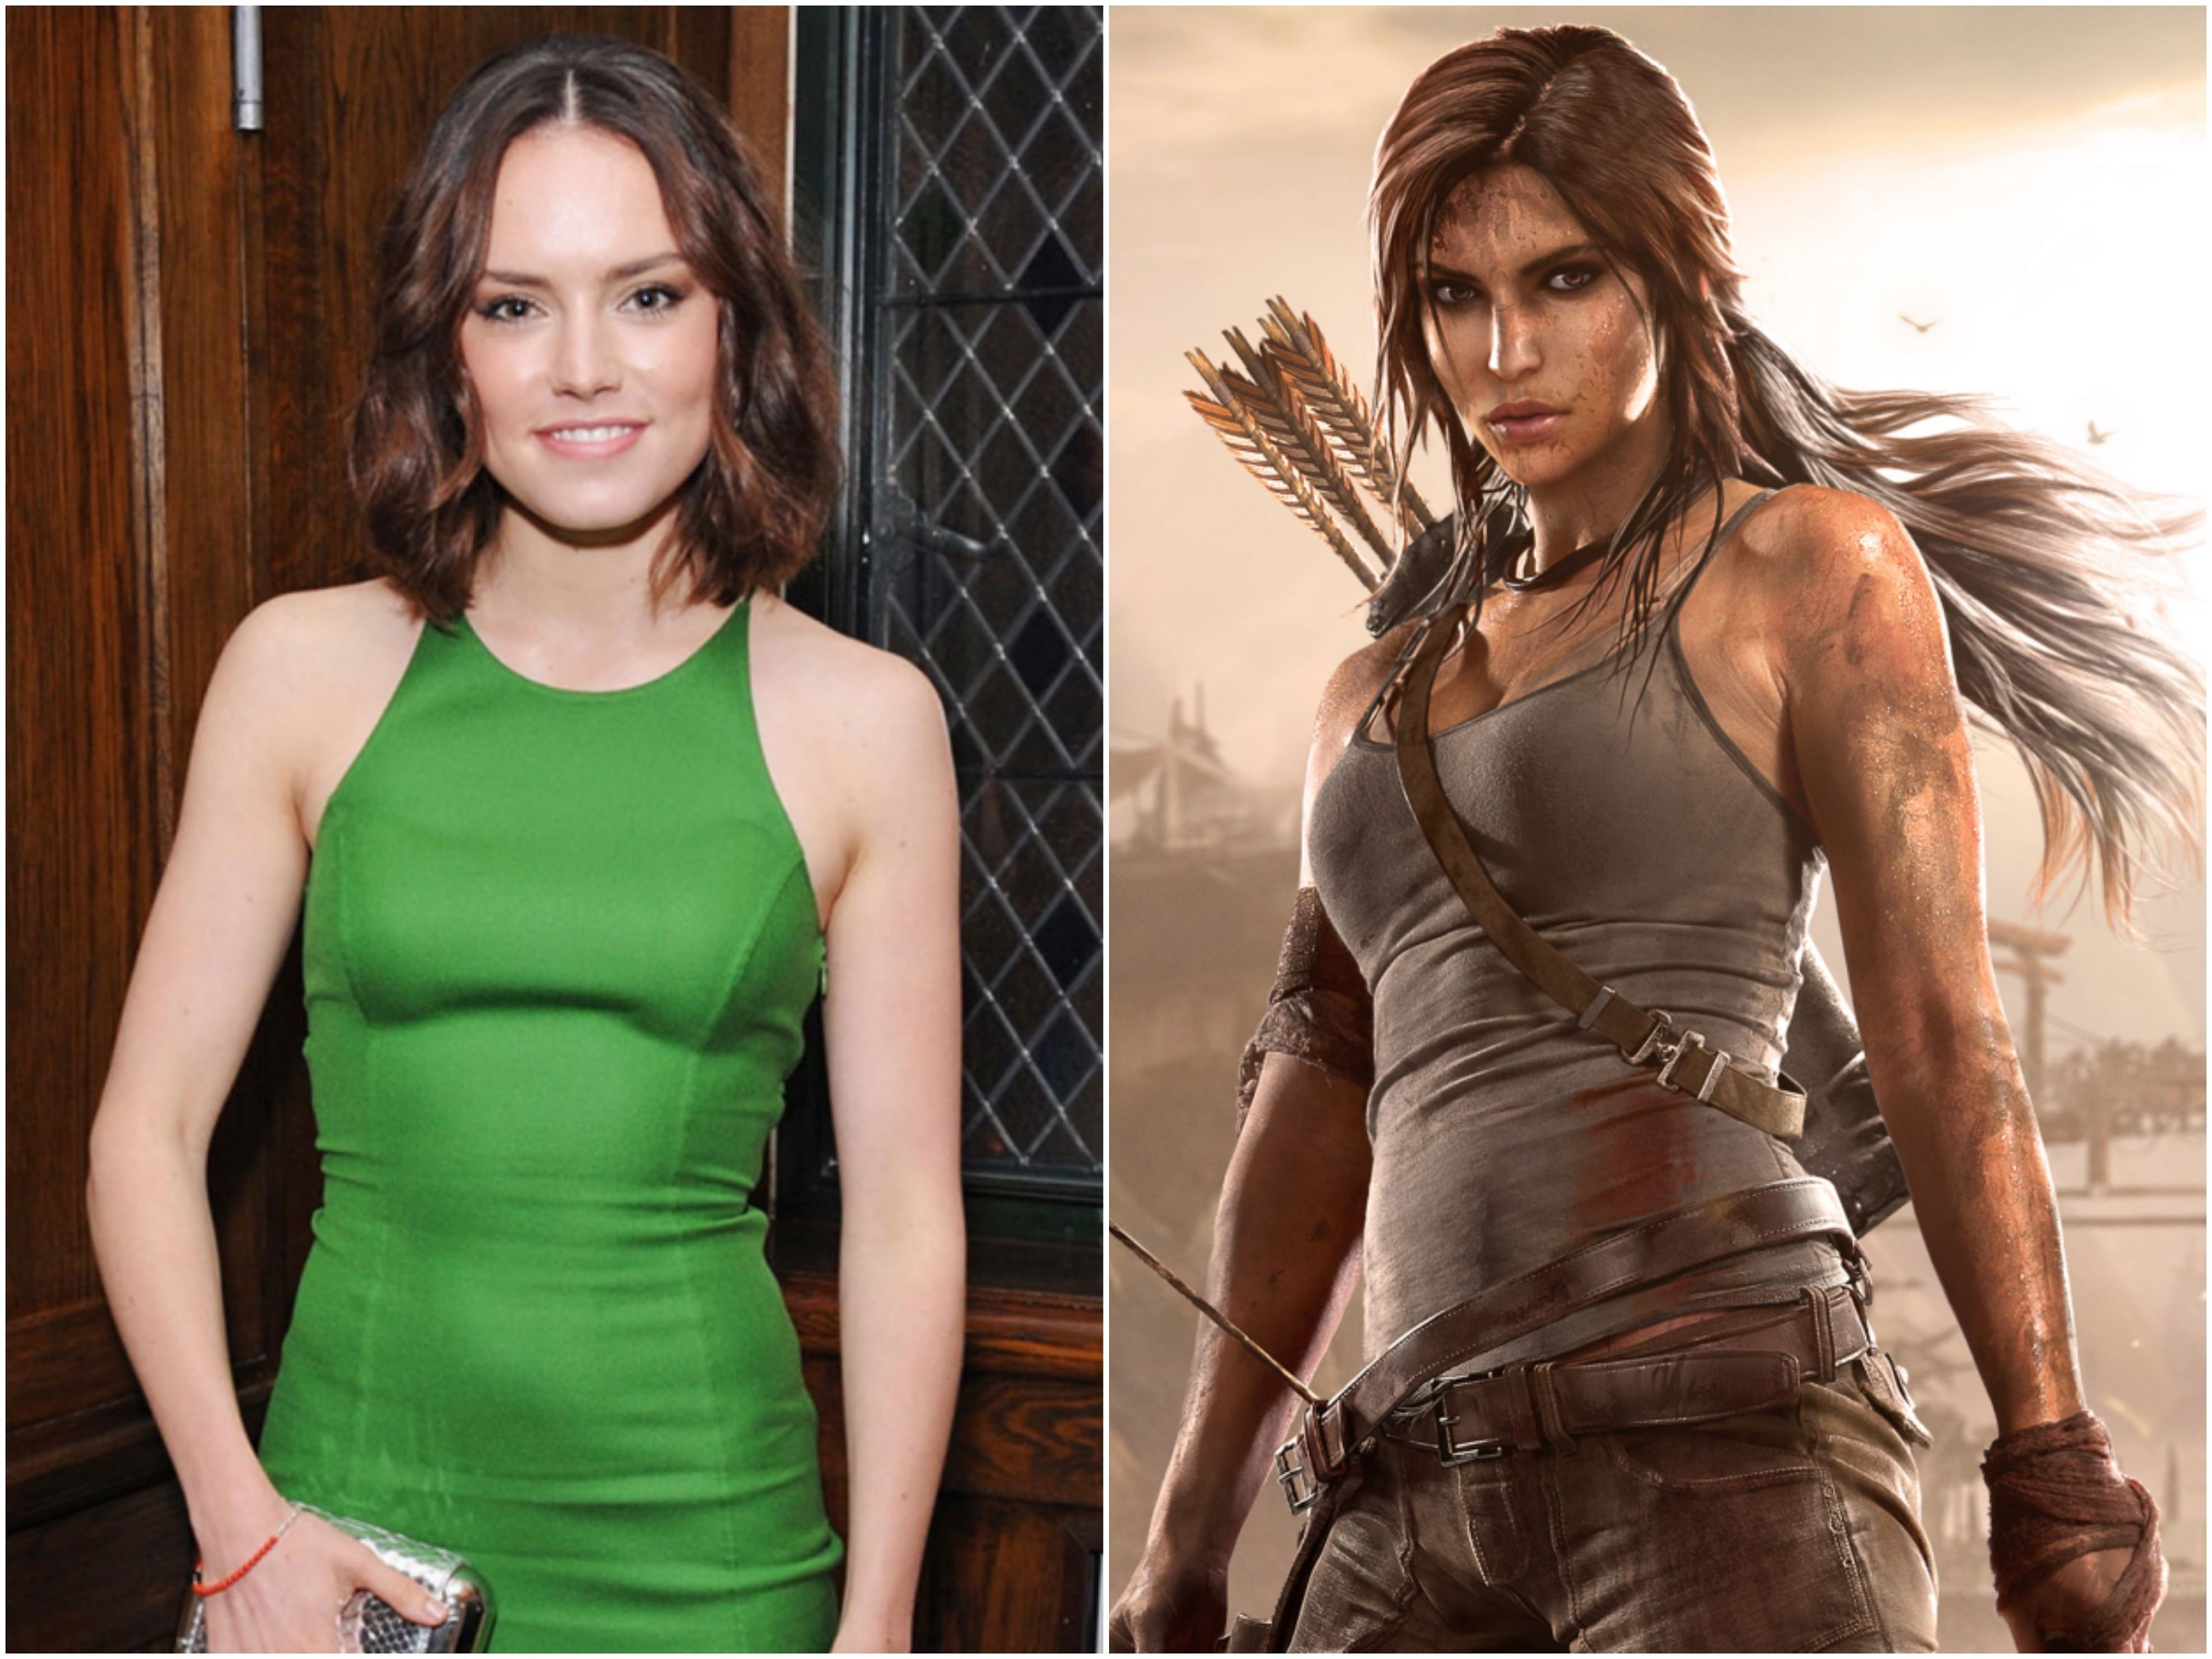 Daisy Ridley Confirms She's In Talks To Play Lara Croft In